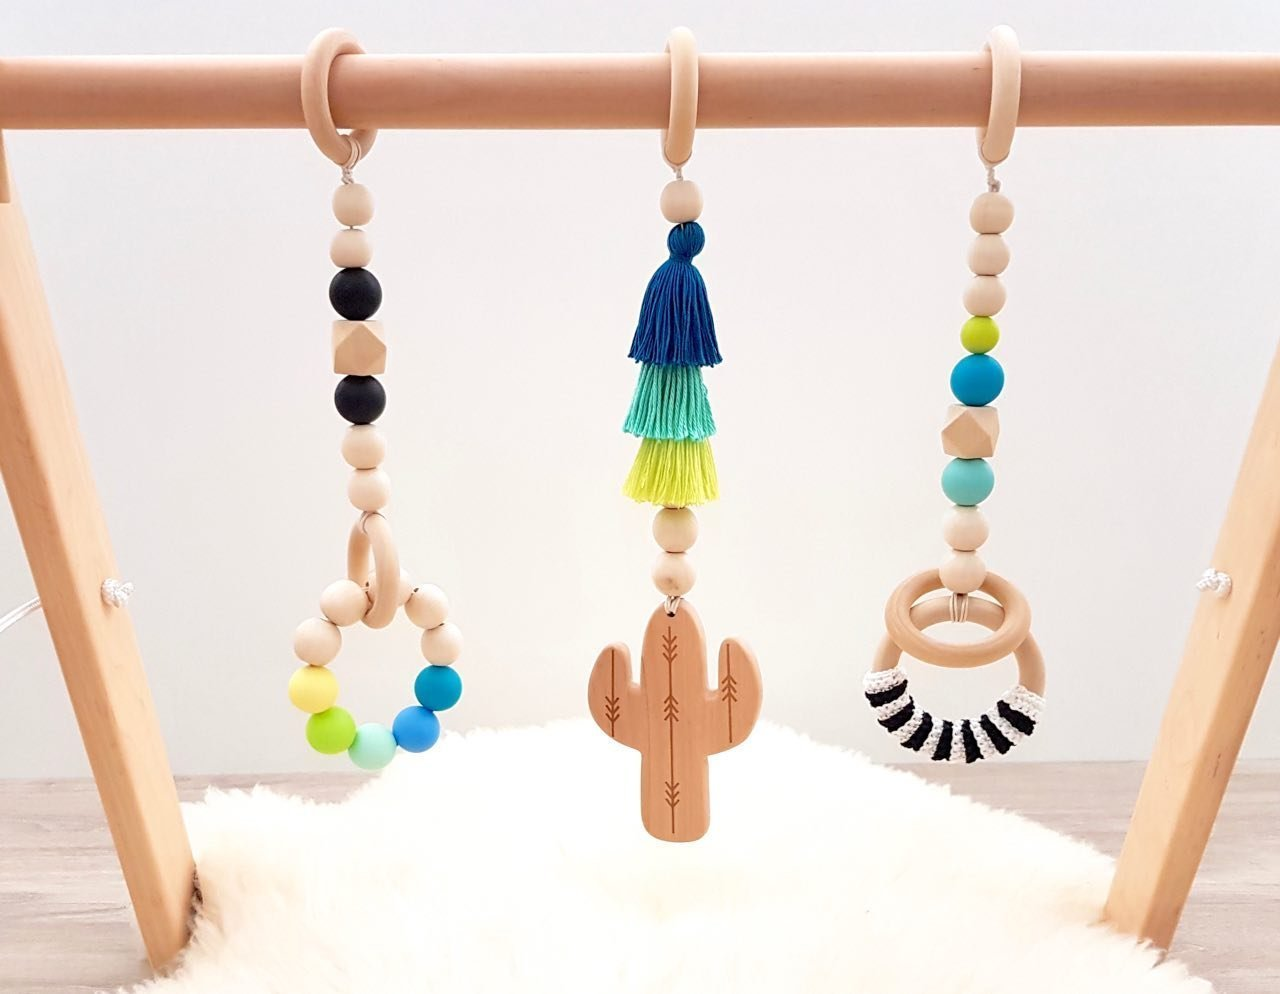 Boho cactus wooden baby gym mobiles set of 3. Desert. Saguaro. Mobiles ONLY. Activity center accessories, play gym wood. Baby shower gift. Gender neutral. Handmade